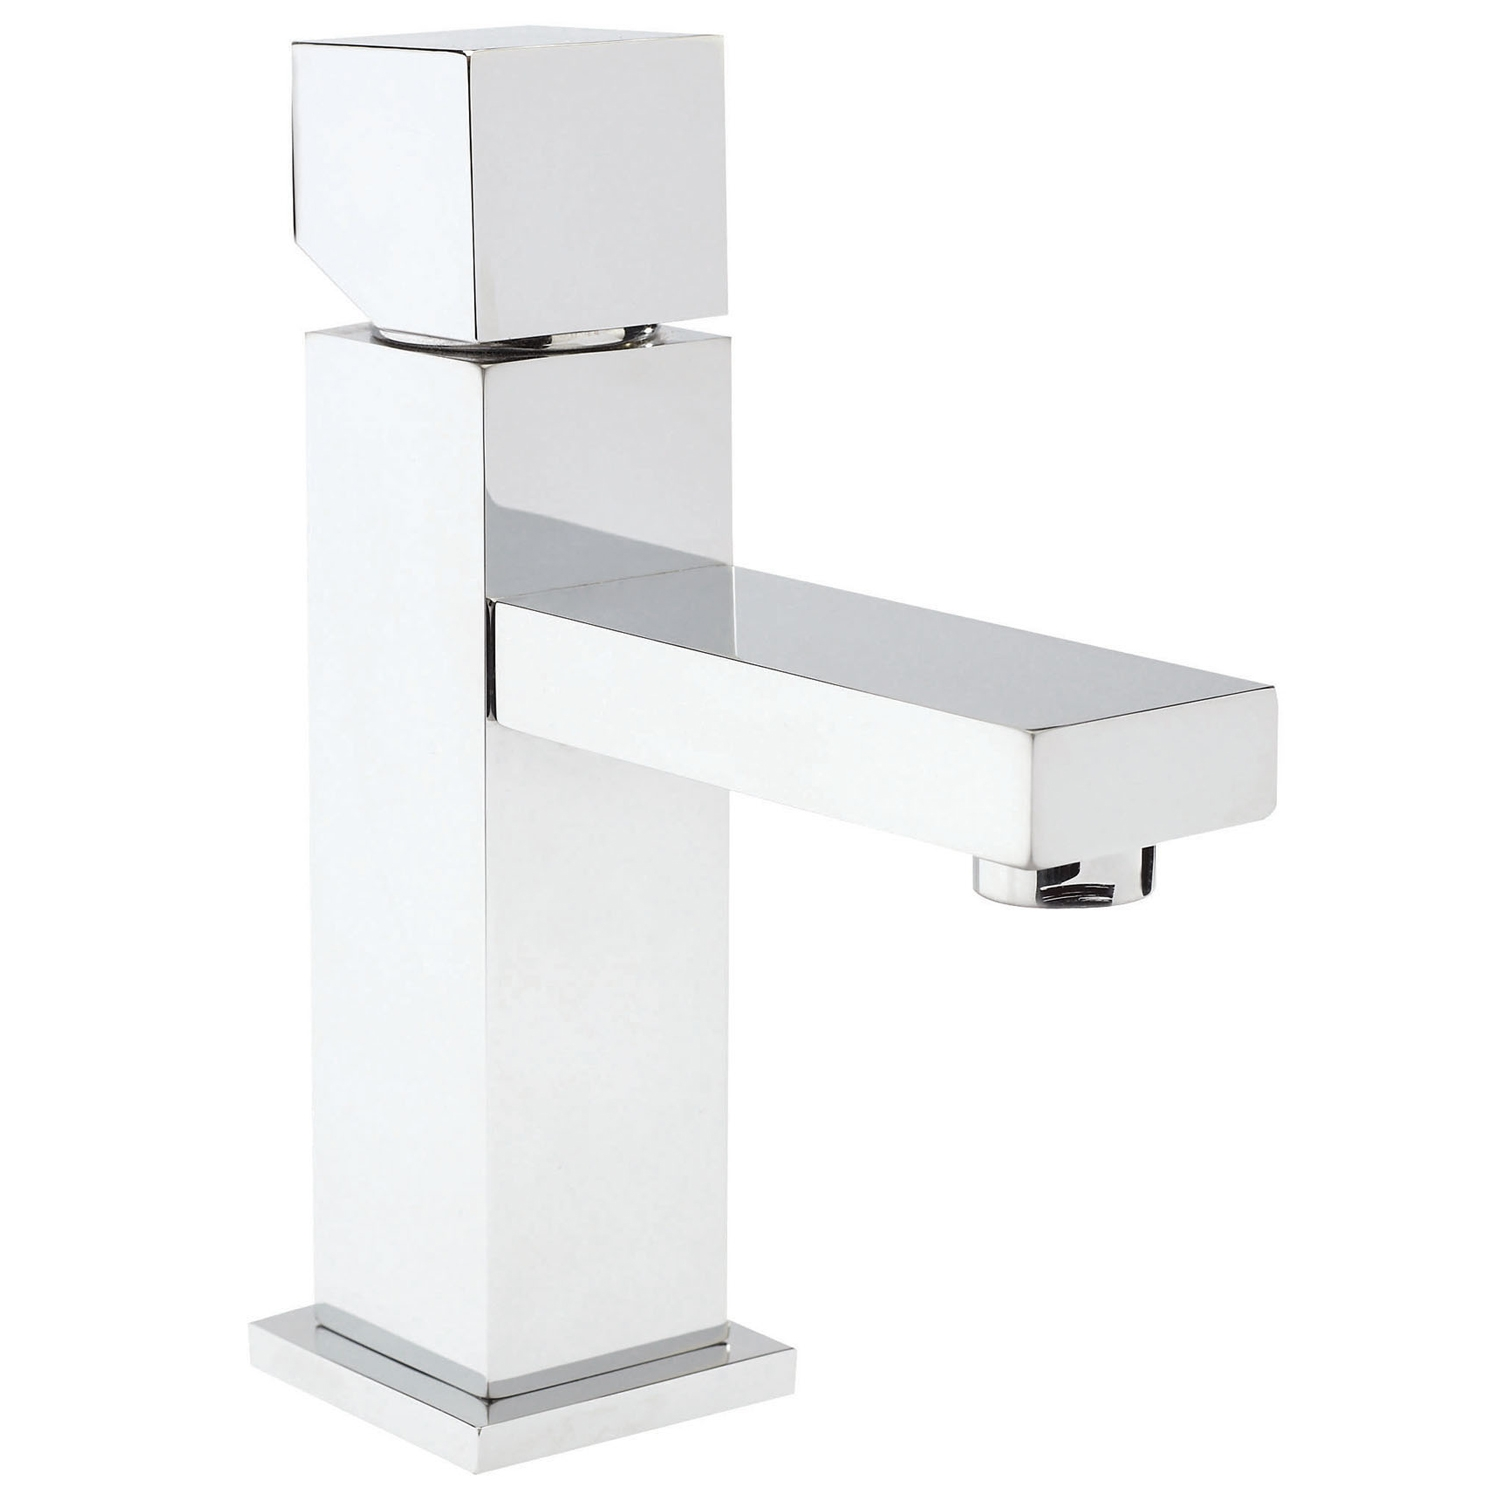 Hudson Reed Kubix Mono Basin Mixer Tap and Bath Shower Mixer Tap, Chrome